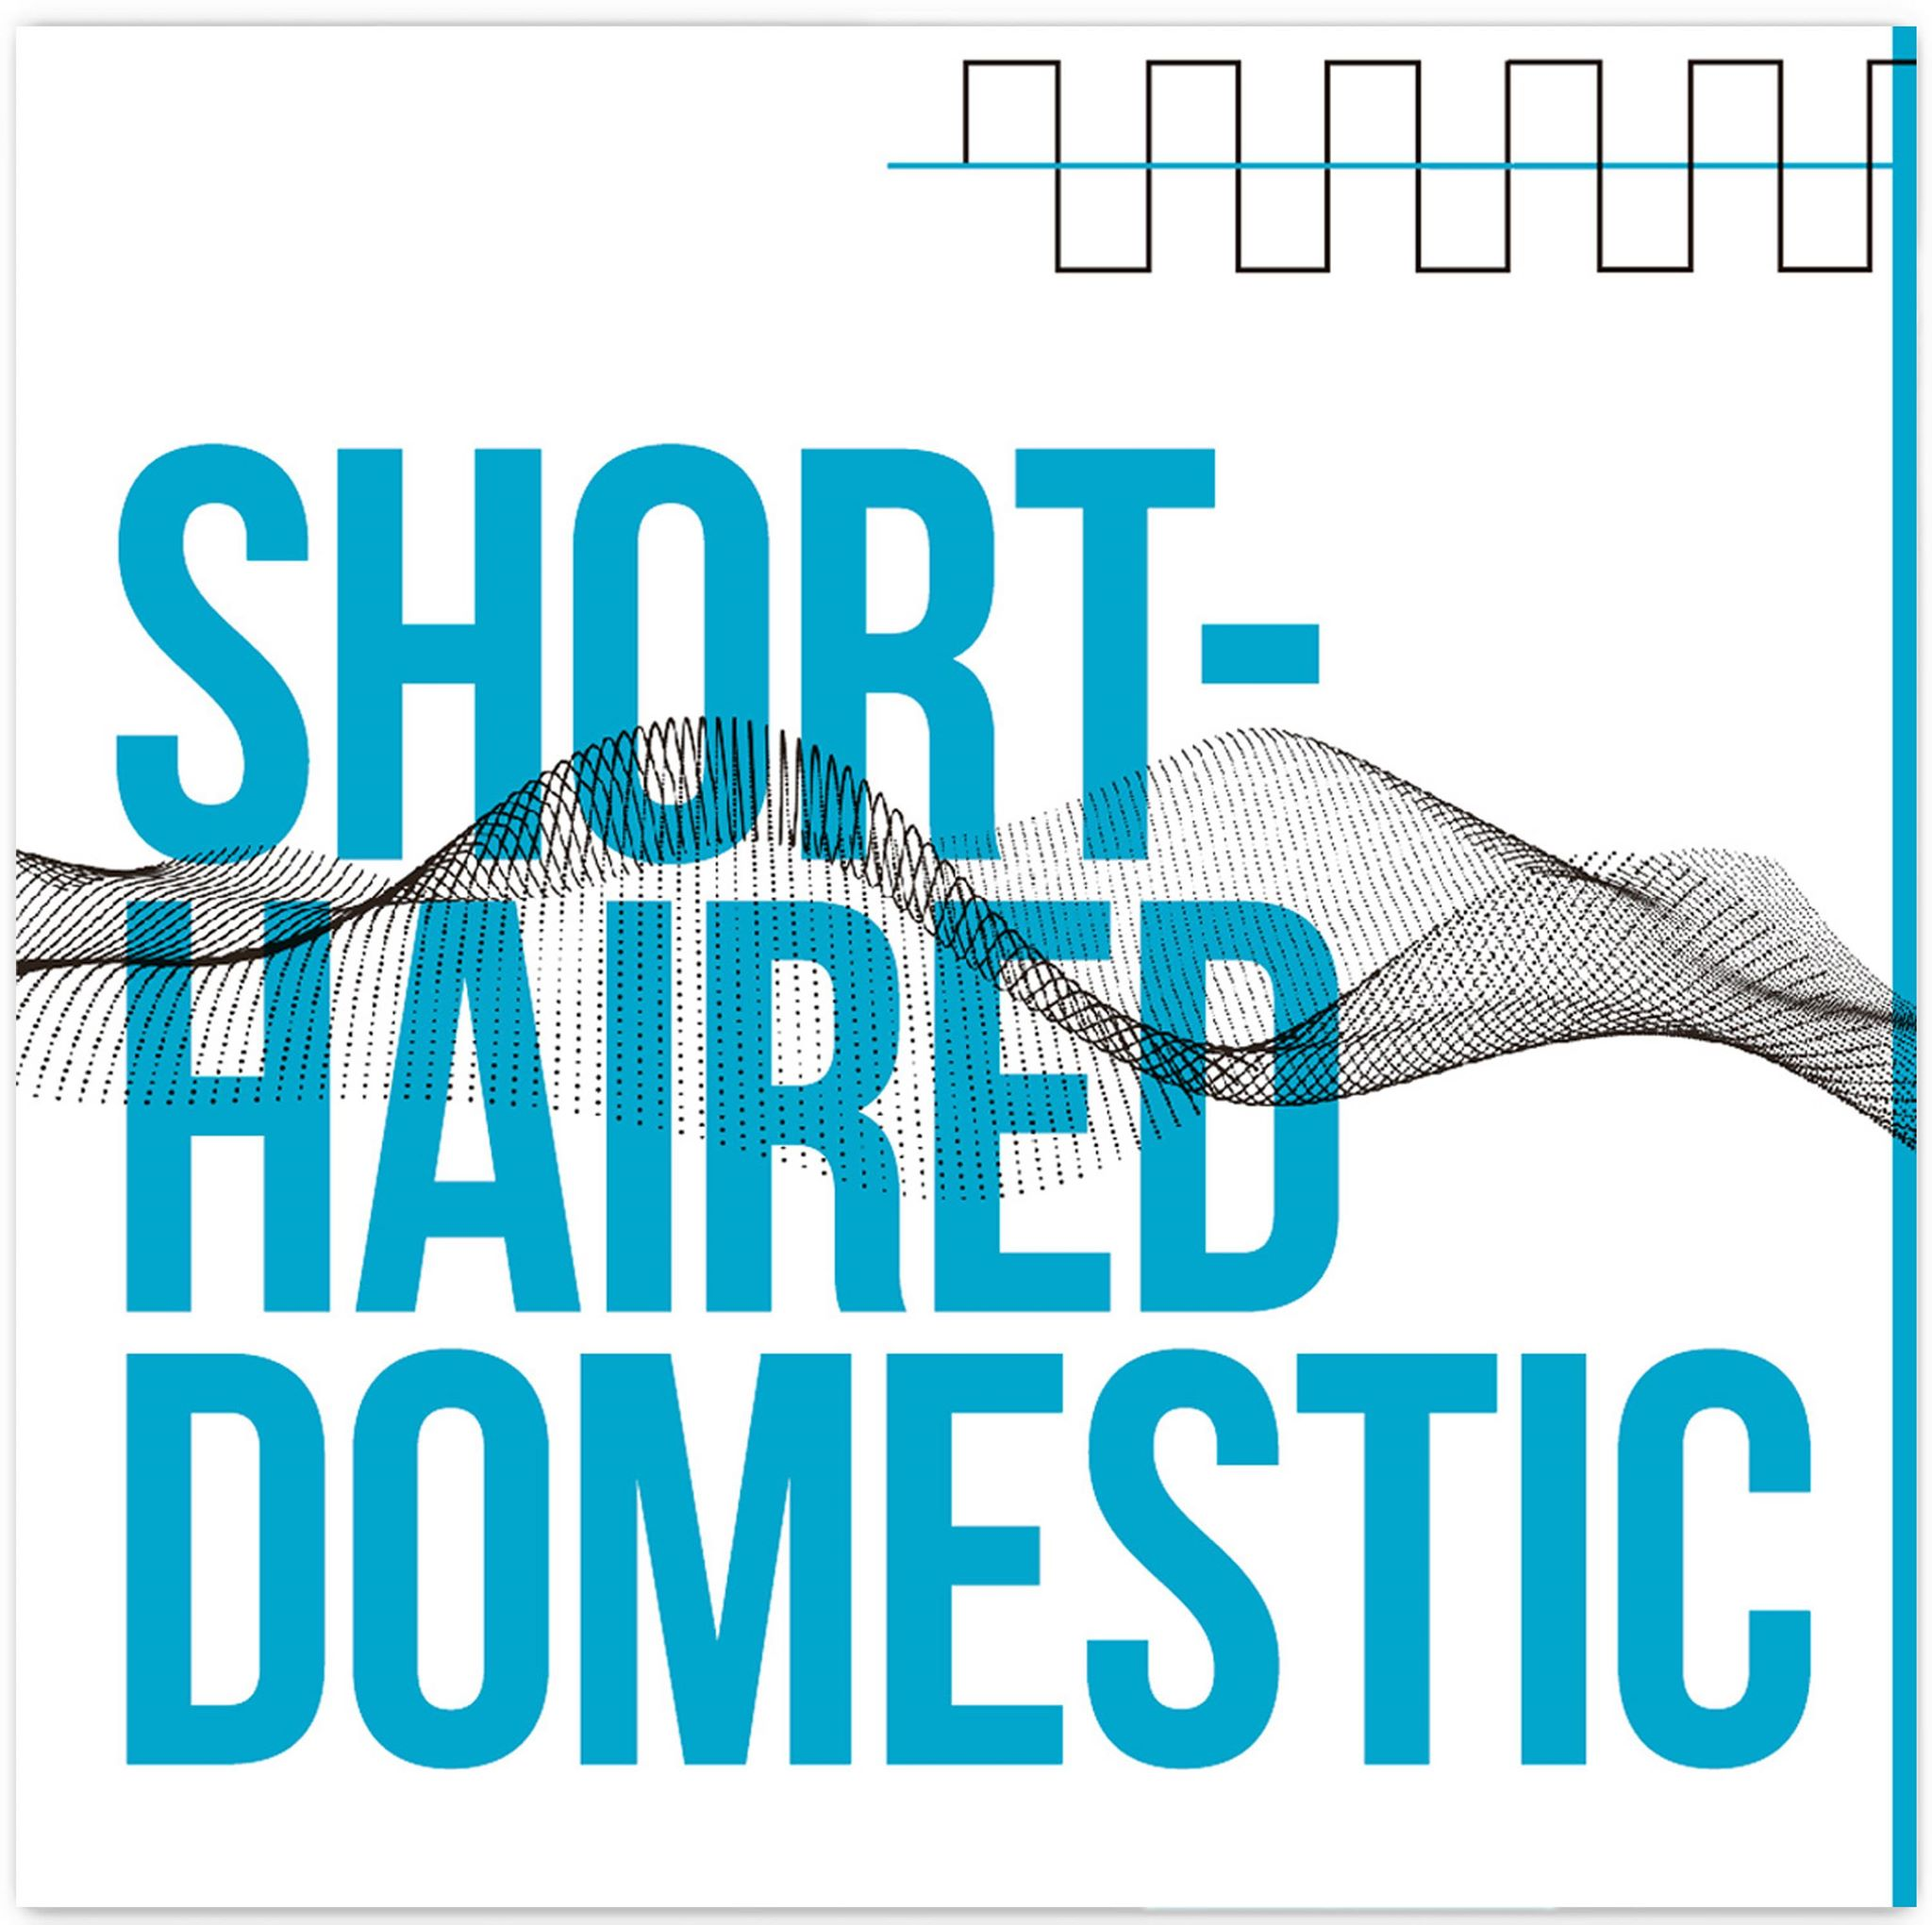 Short-Haired Domestic (single cover)